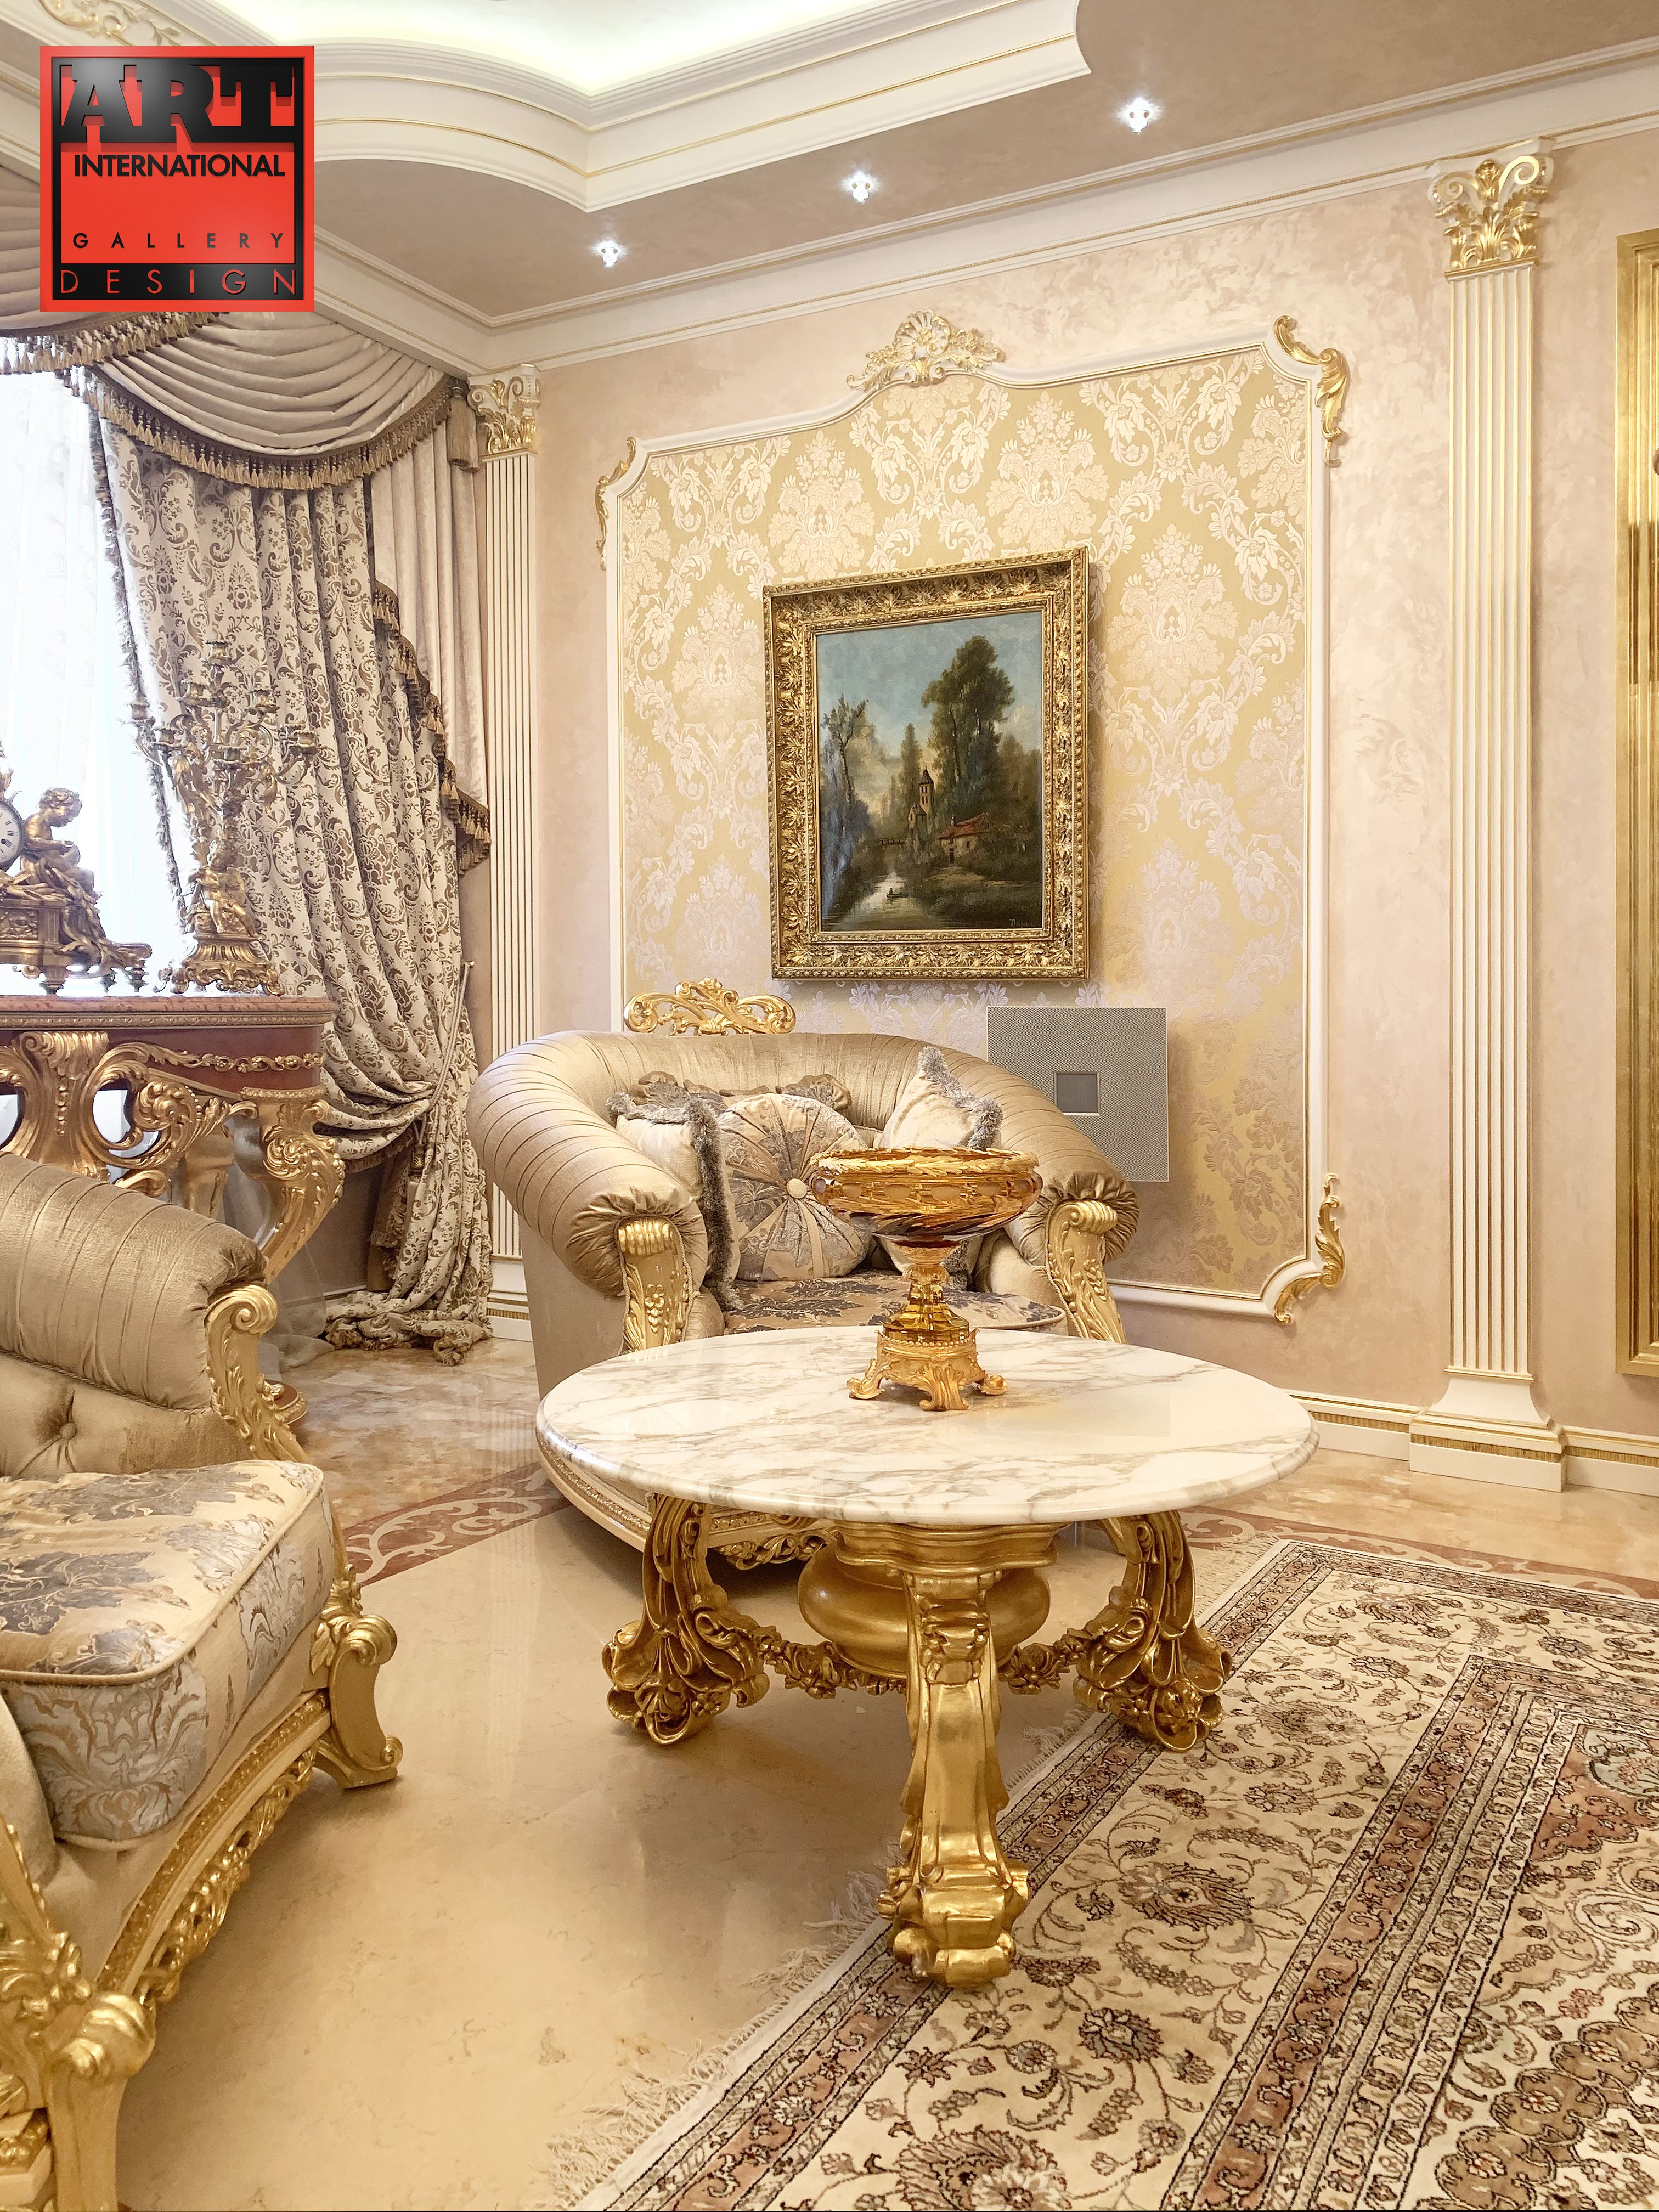 Design Royal Living Room With Exclusive Furniture Luxury Interior Design Living Room Classic Interior Design Living Room Sitting Room Interior Design